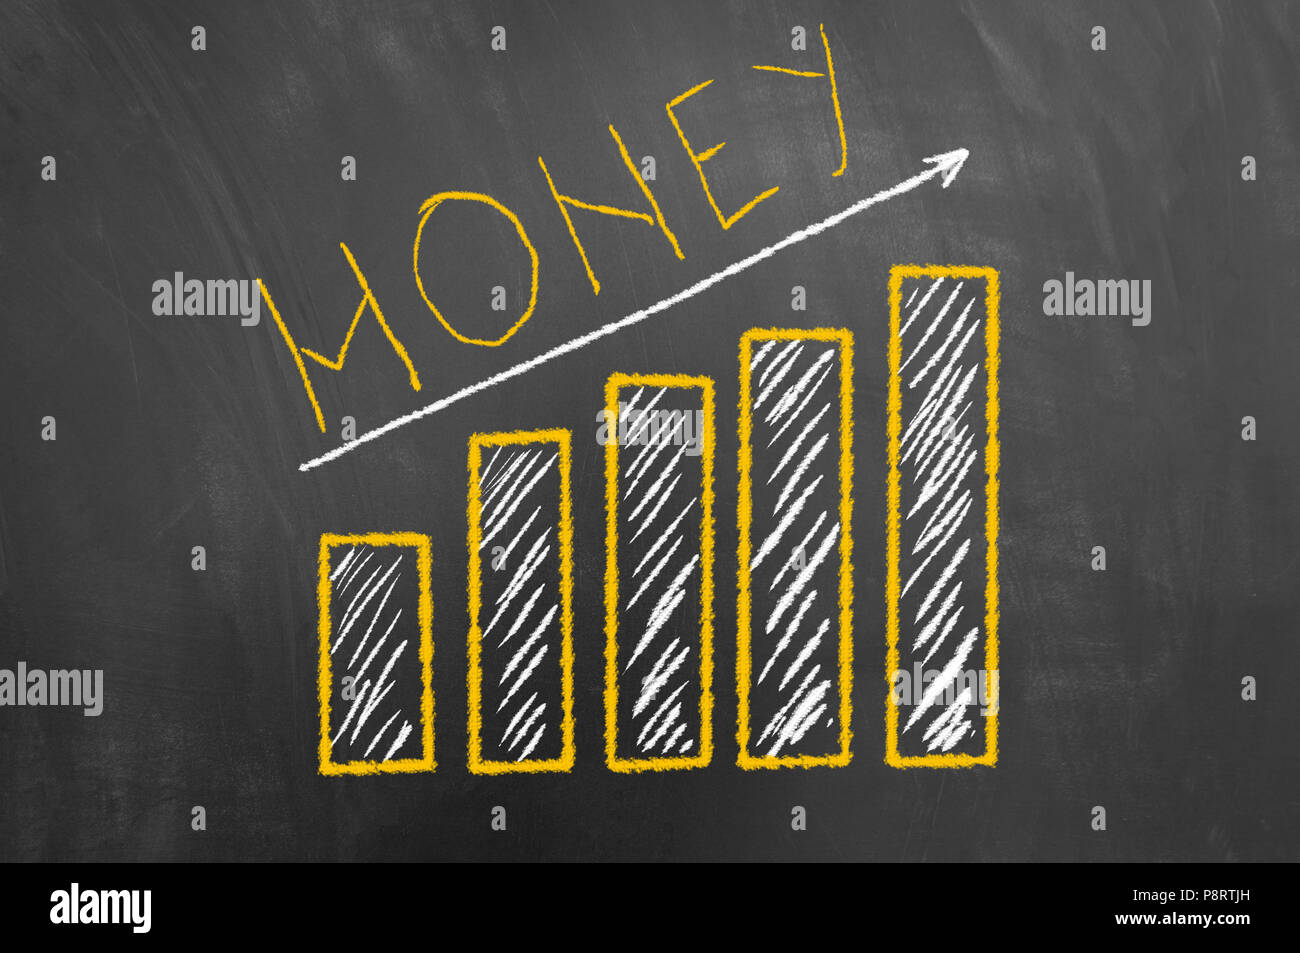 money growing up bar and arrow chalk chart drawing on chalkboard or